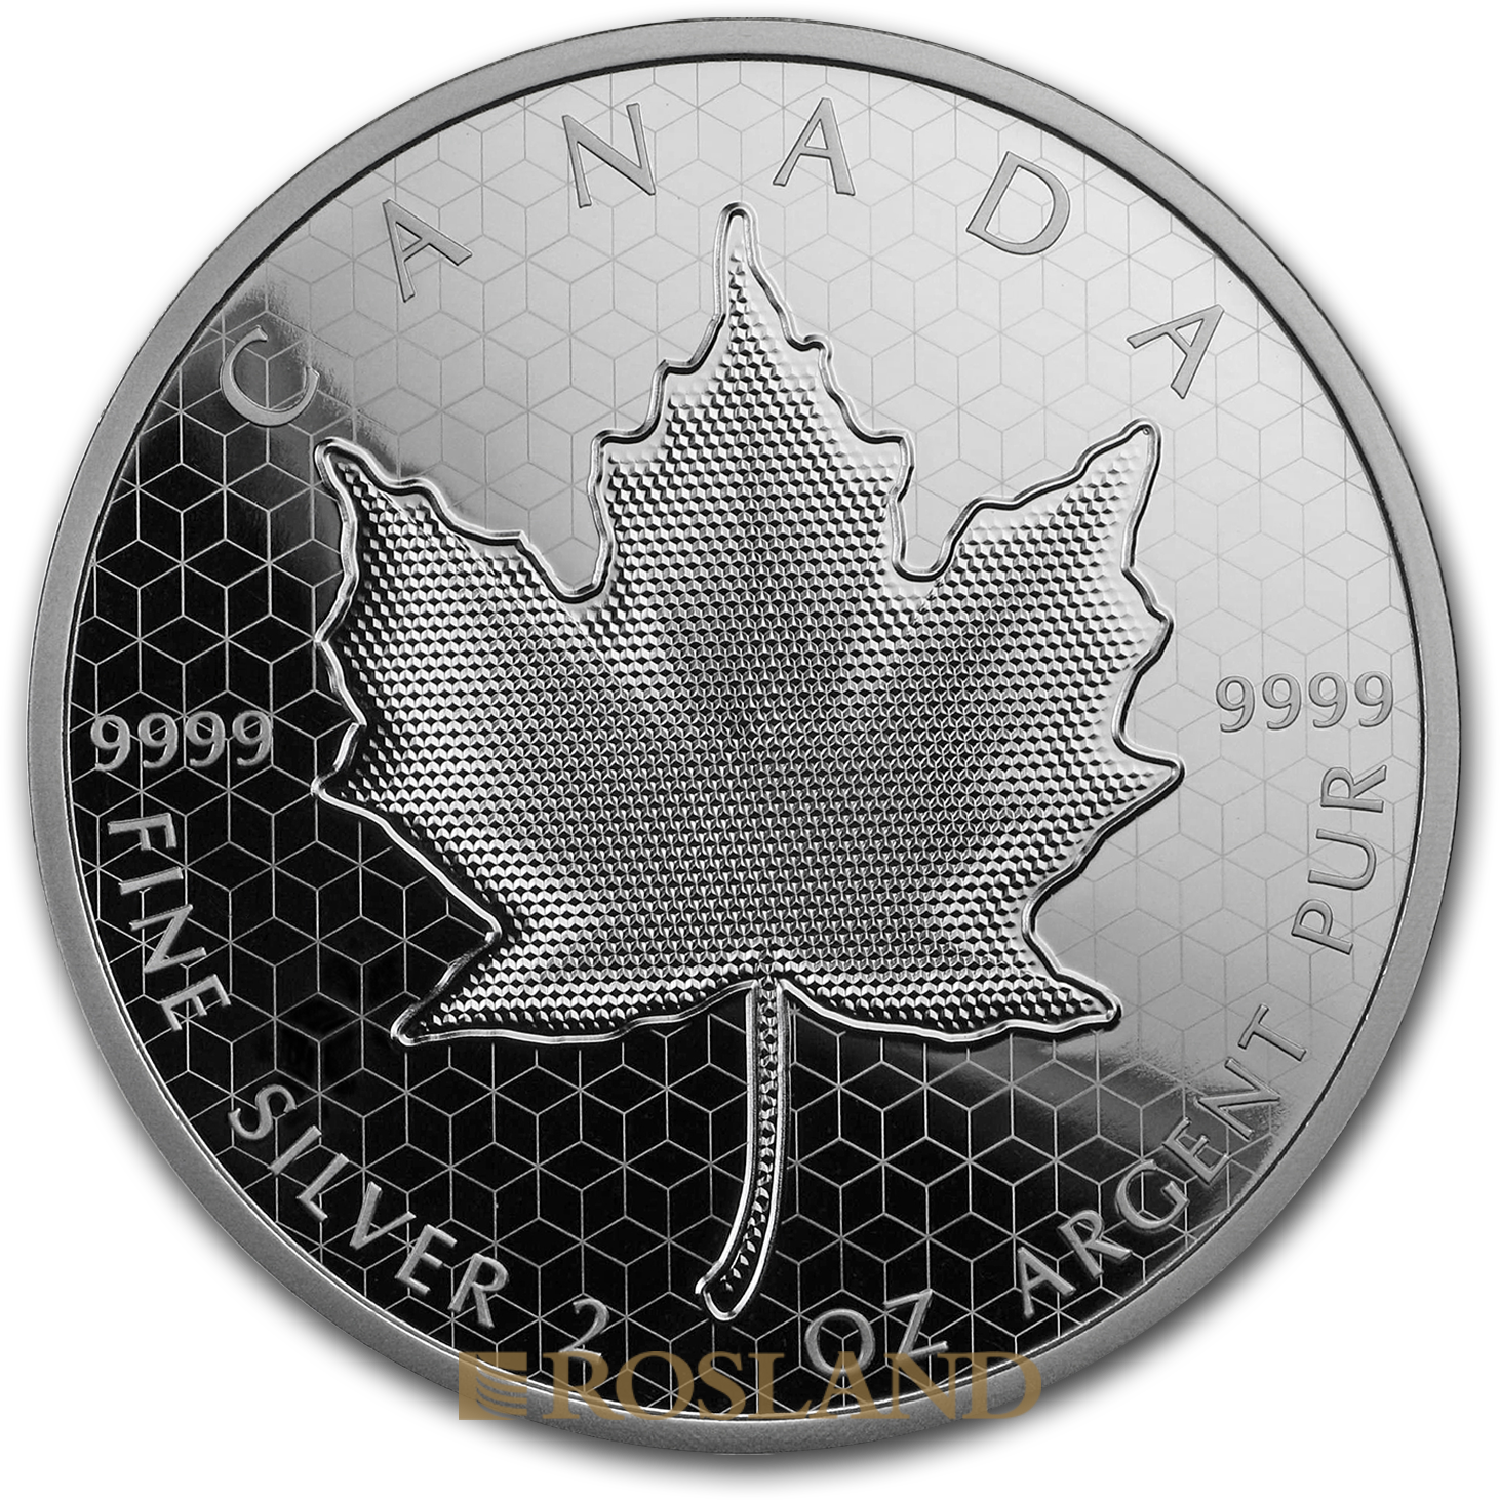 2 Unzen Silbermünze Kanada Maple Leaf Pulsating 2020 (Box, Zertifikat)